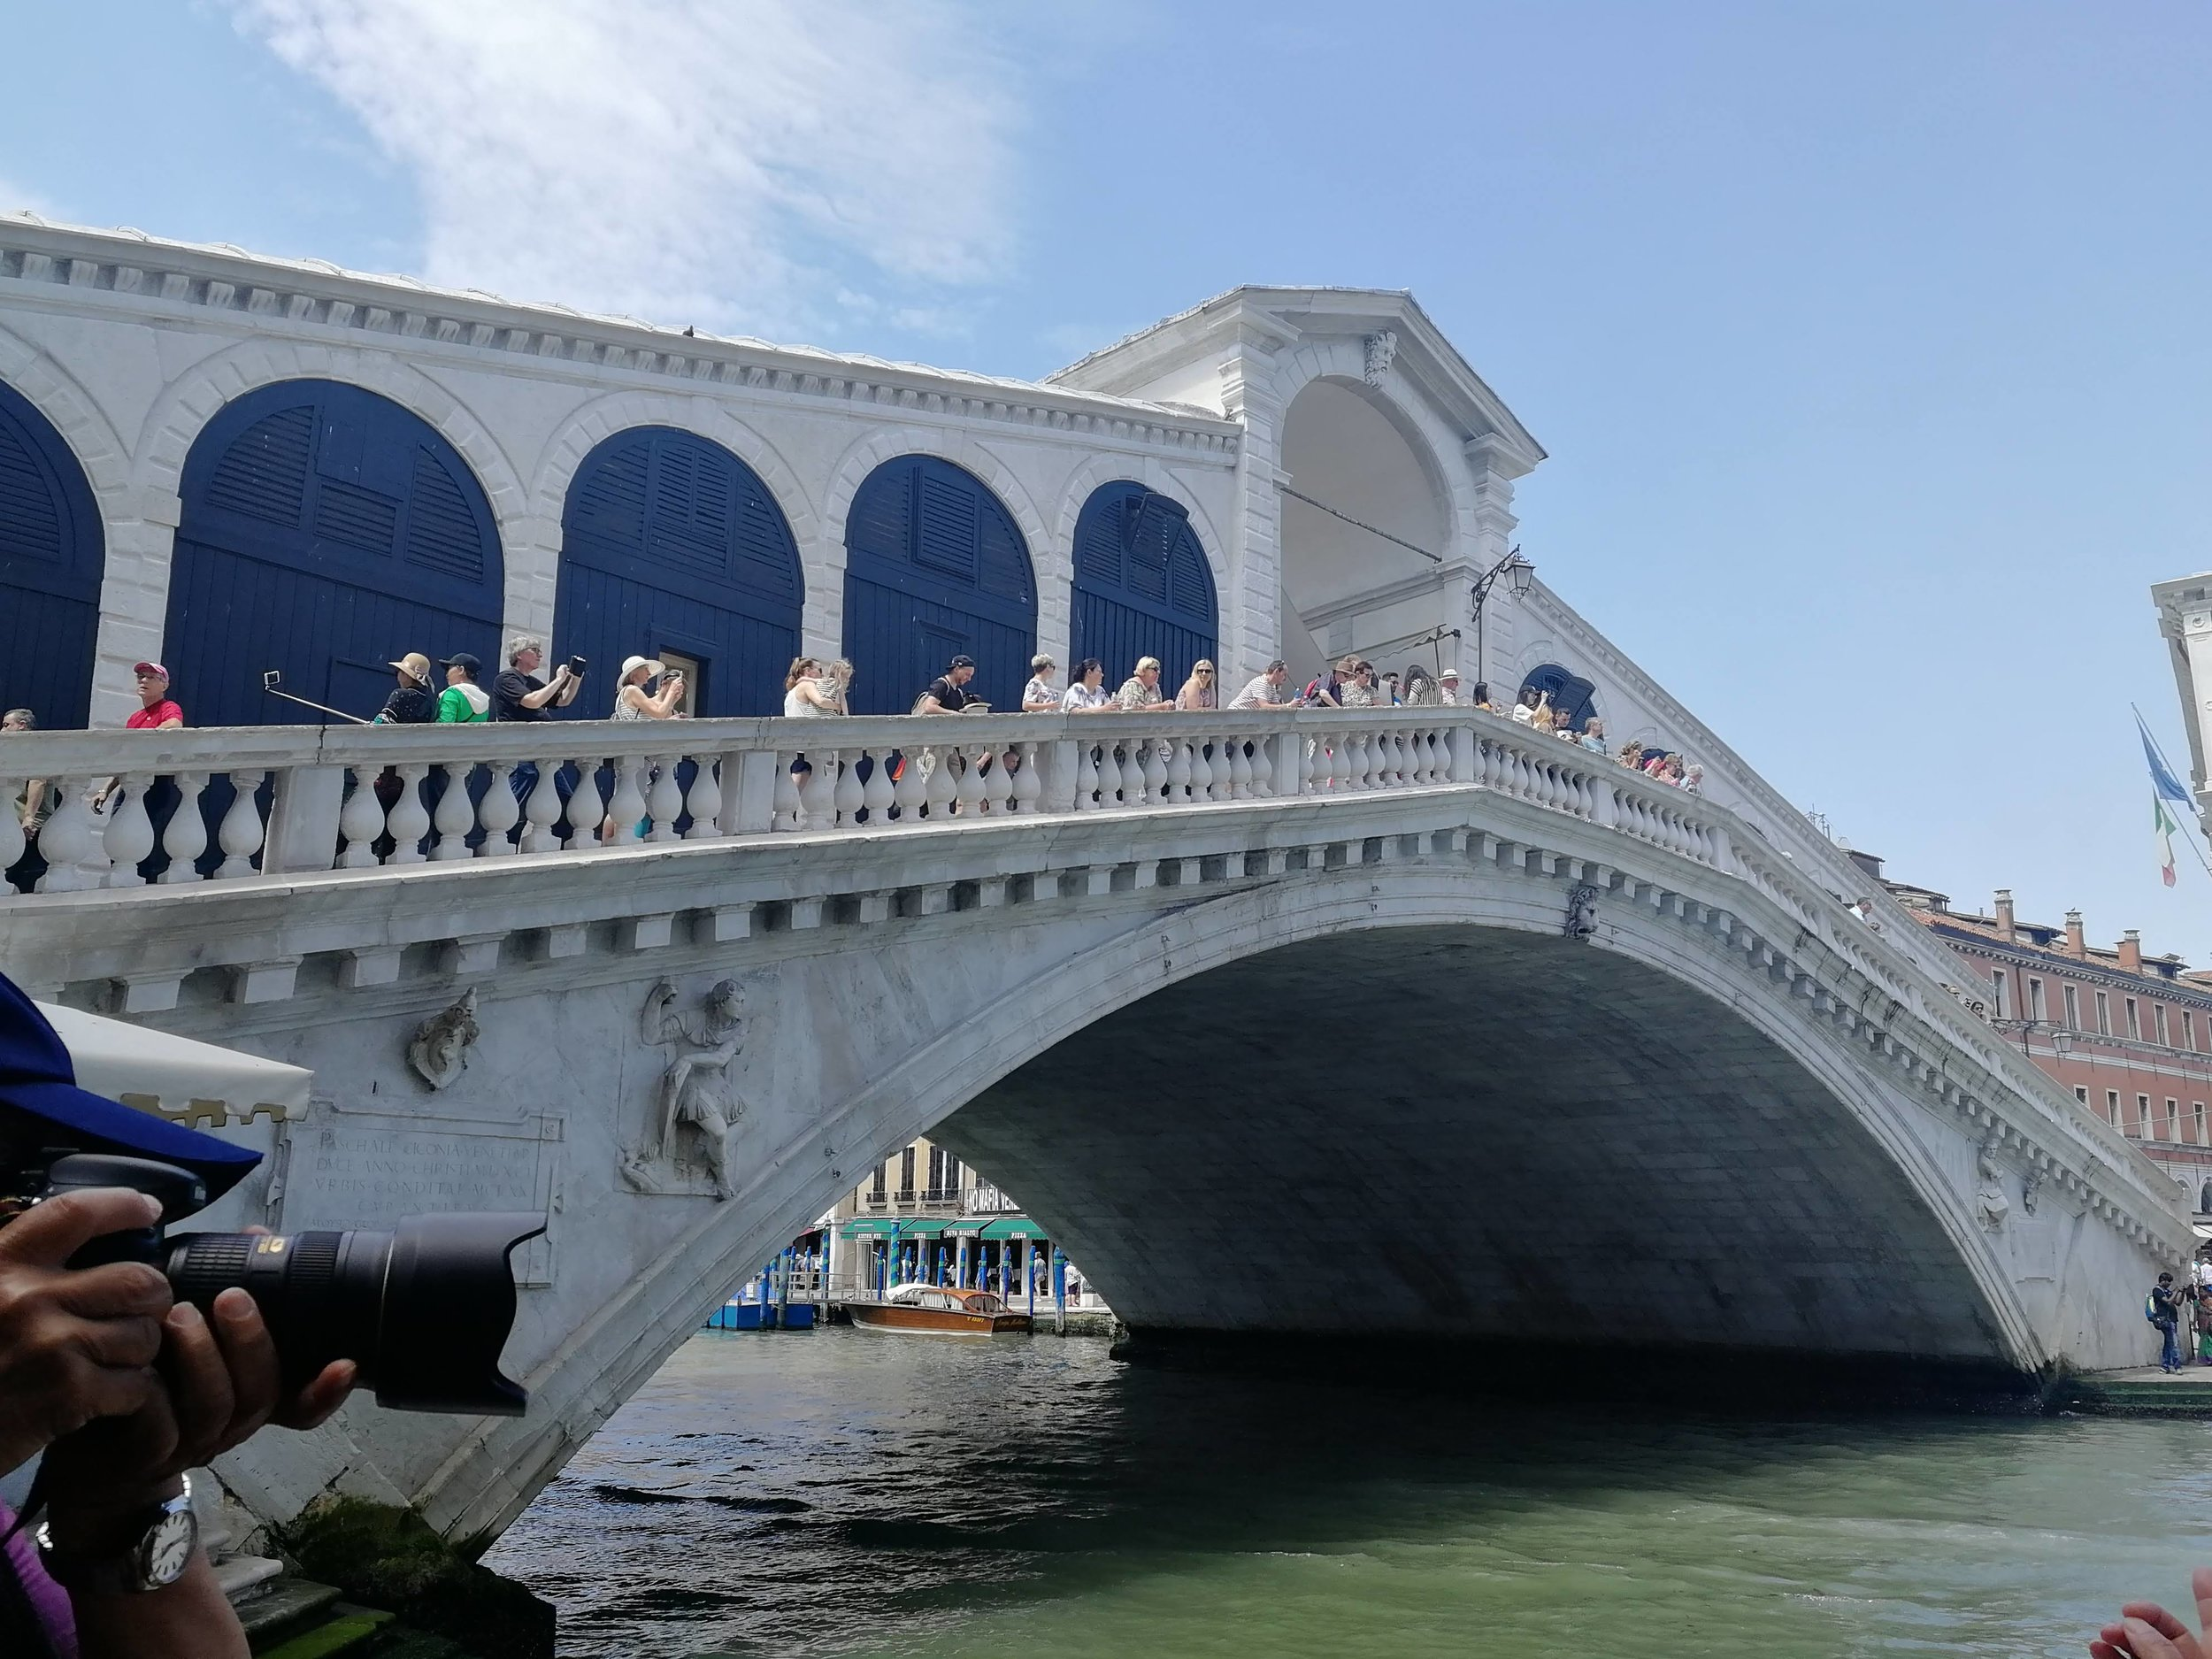 I think this is the Rialto bridge. I didn't have a guide book *shrugs*